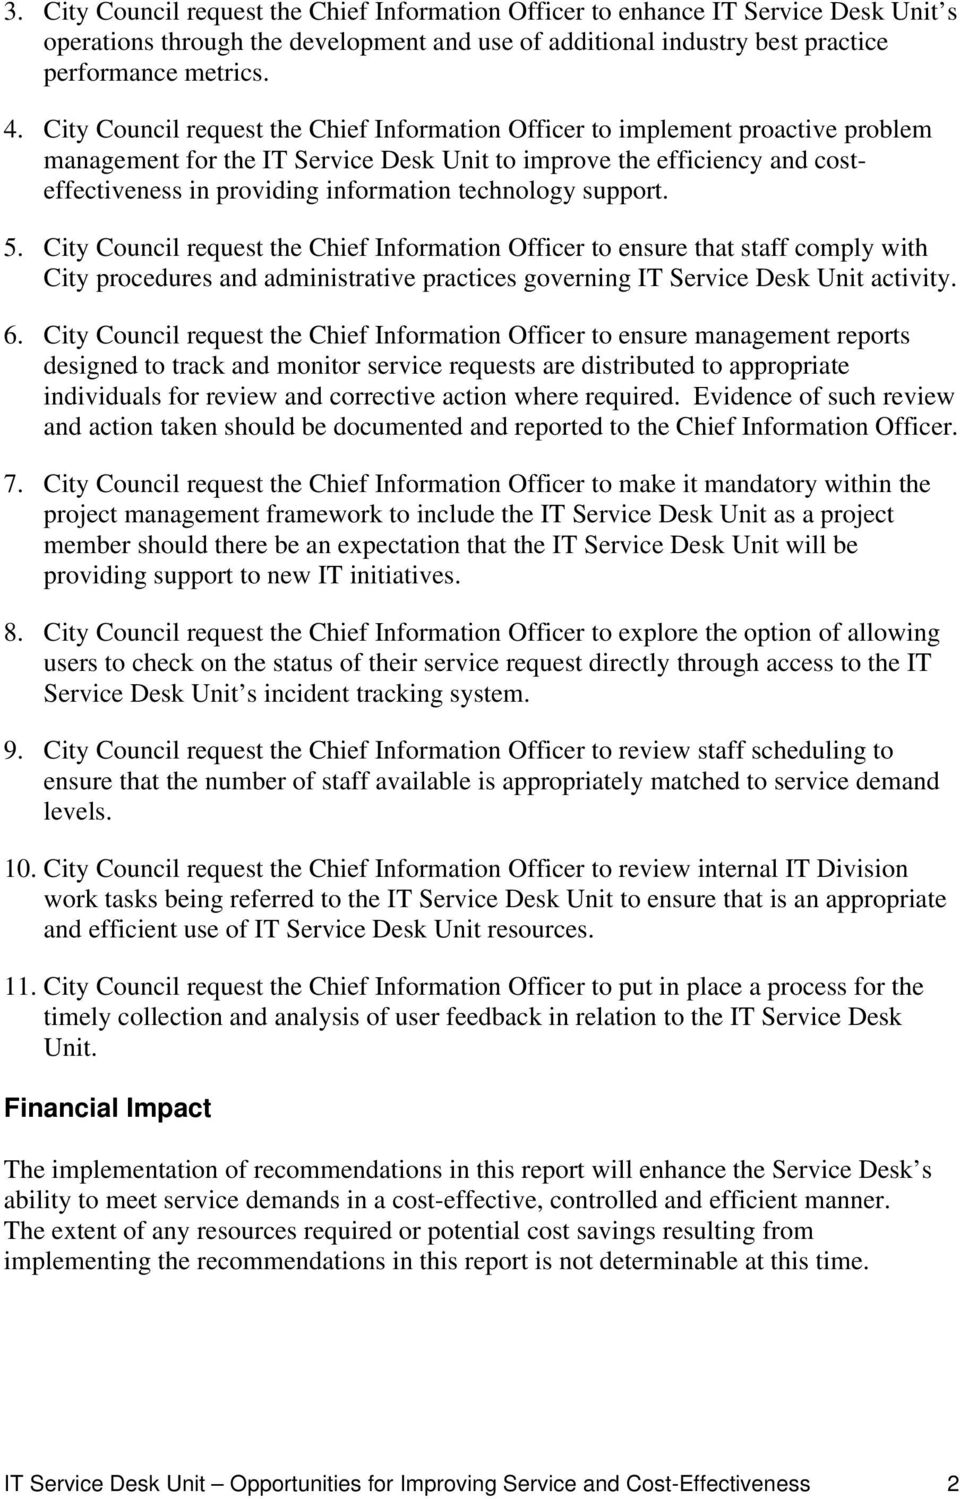 technology support. 5. City Council request the Chief Information Officer to ensure that staff comply with City procedures and administrative practices governing IT Service Desk Unit activity. 6.